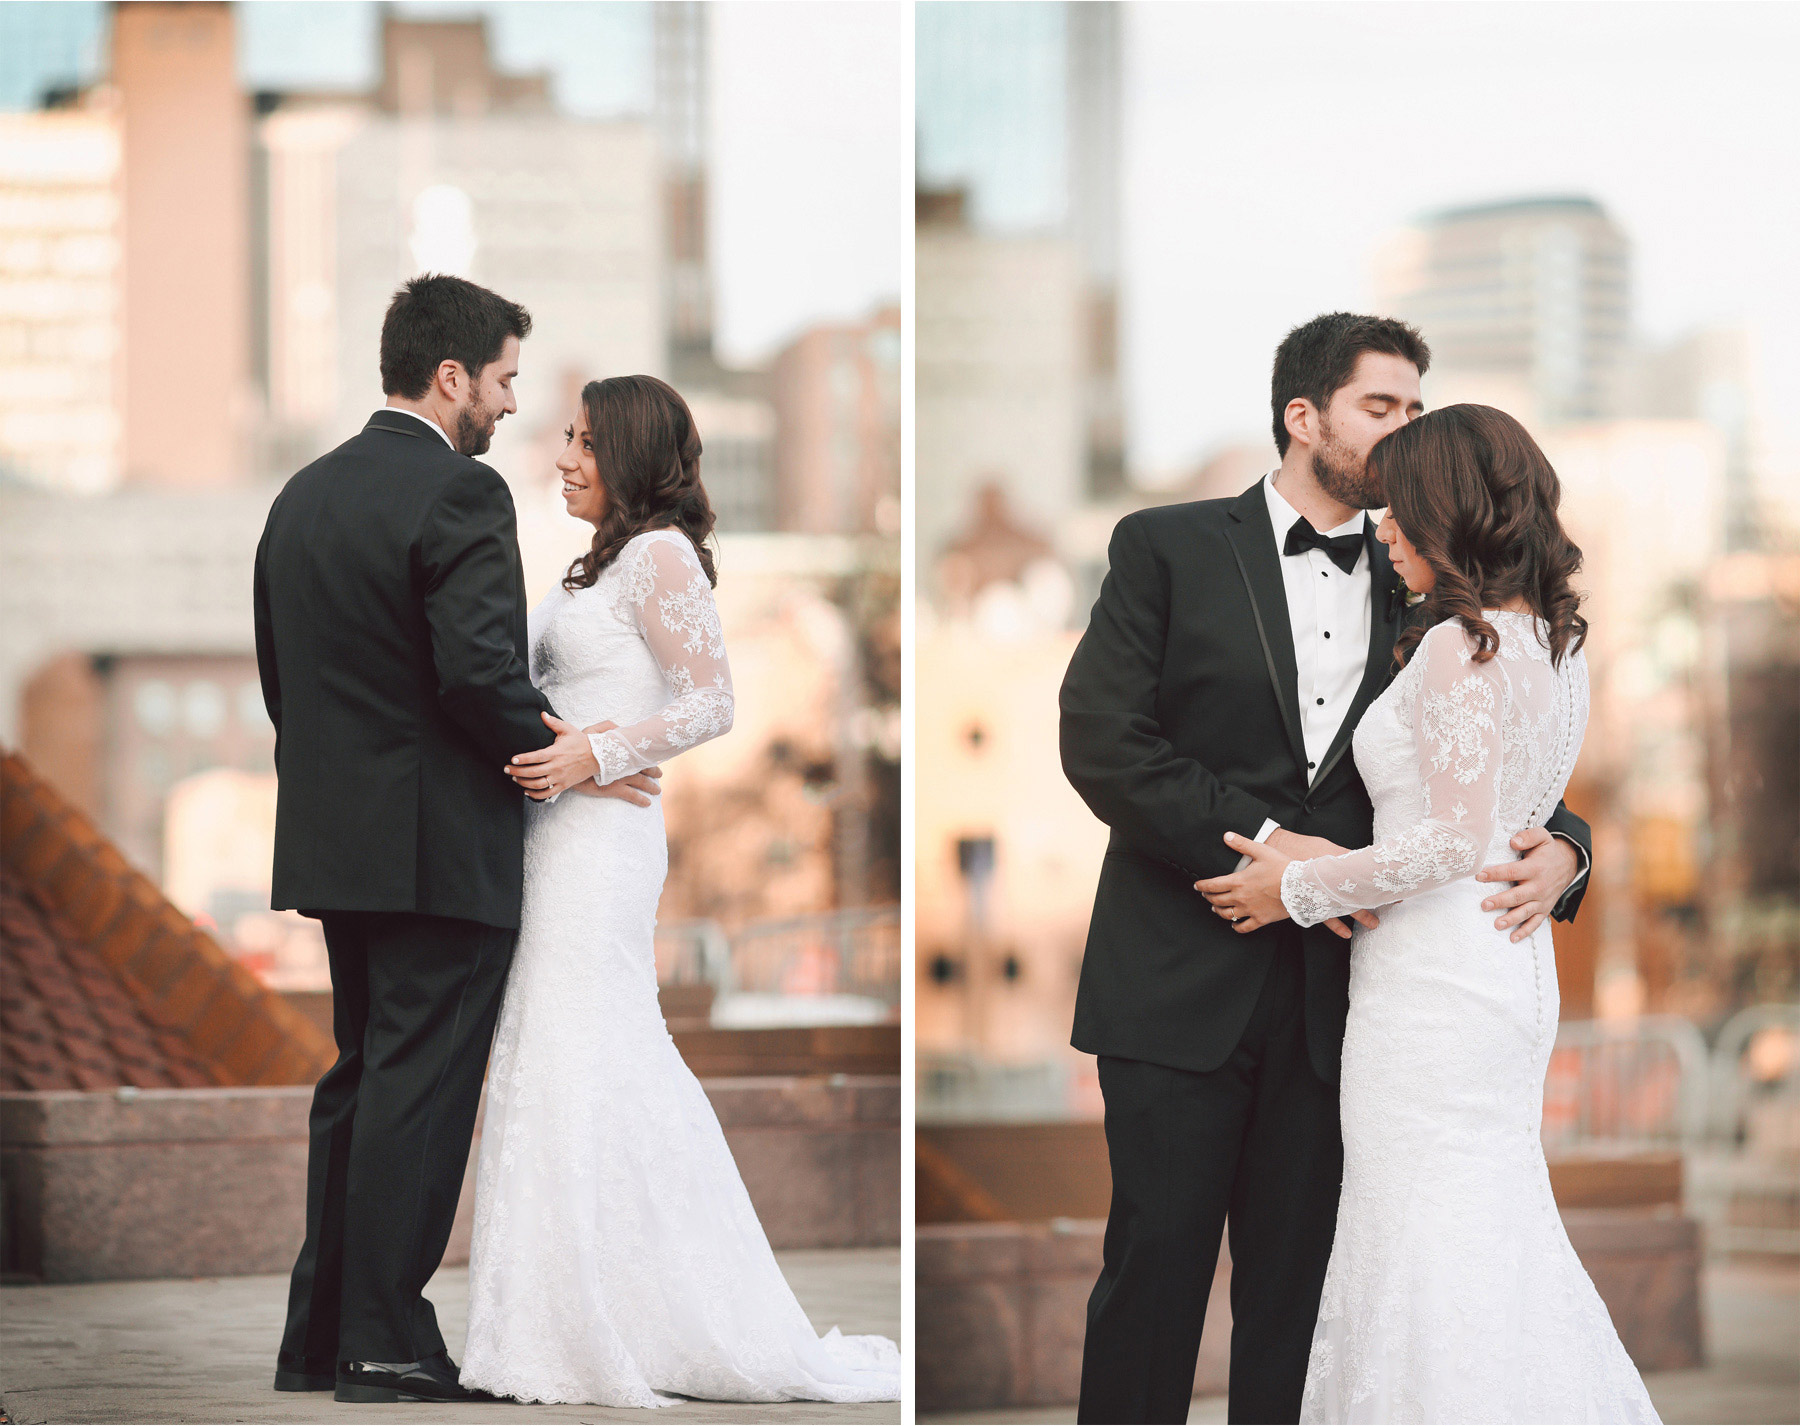 05-Minneapolis-Minnesota-Wedding-Photographer-by-Andrew-Vick-Photography-Winter-Millennium-Hotel-First-Meeting-Look-Bride-Groom-Downtown-Kiss-Vintage-Amy-and-Jordan.jpg